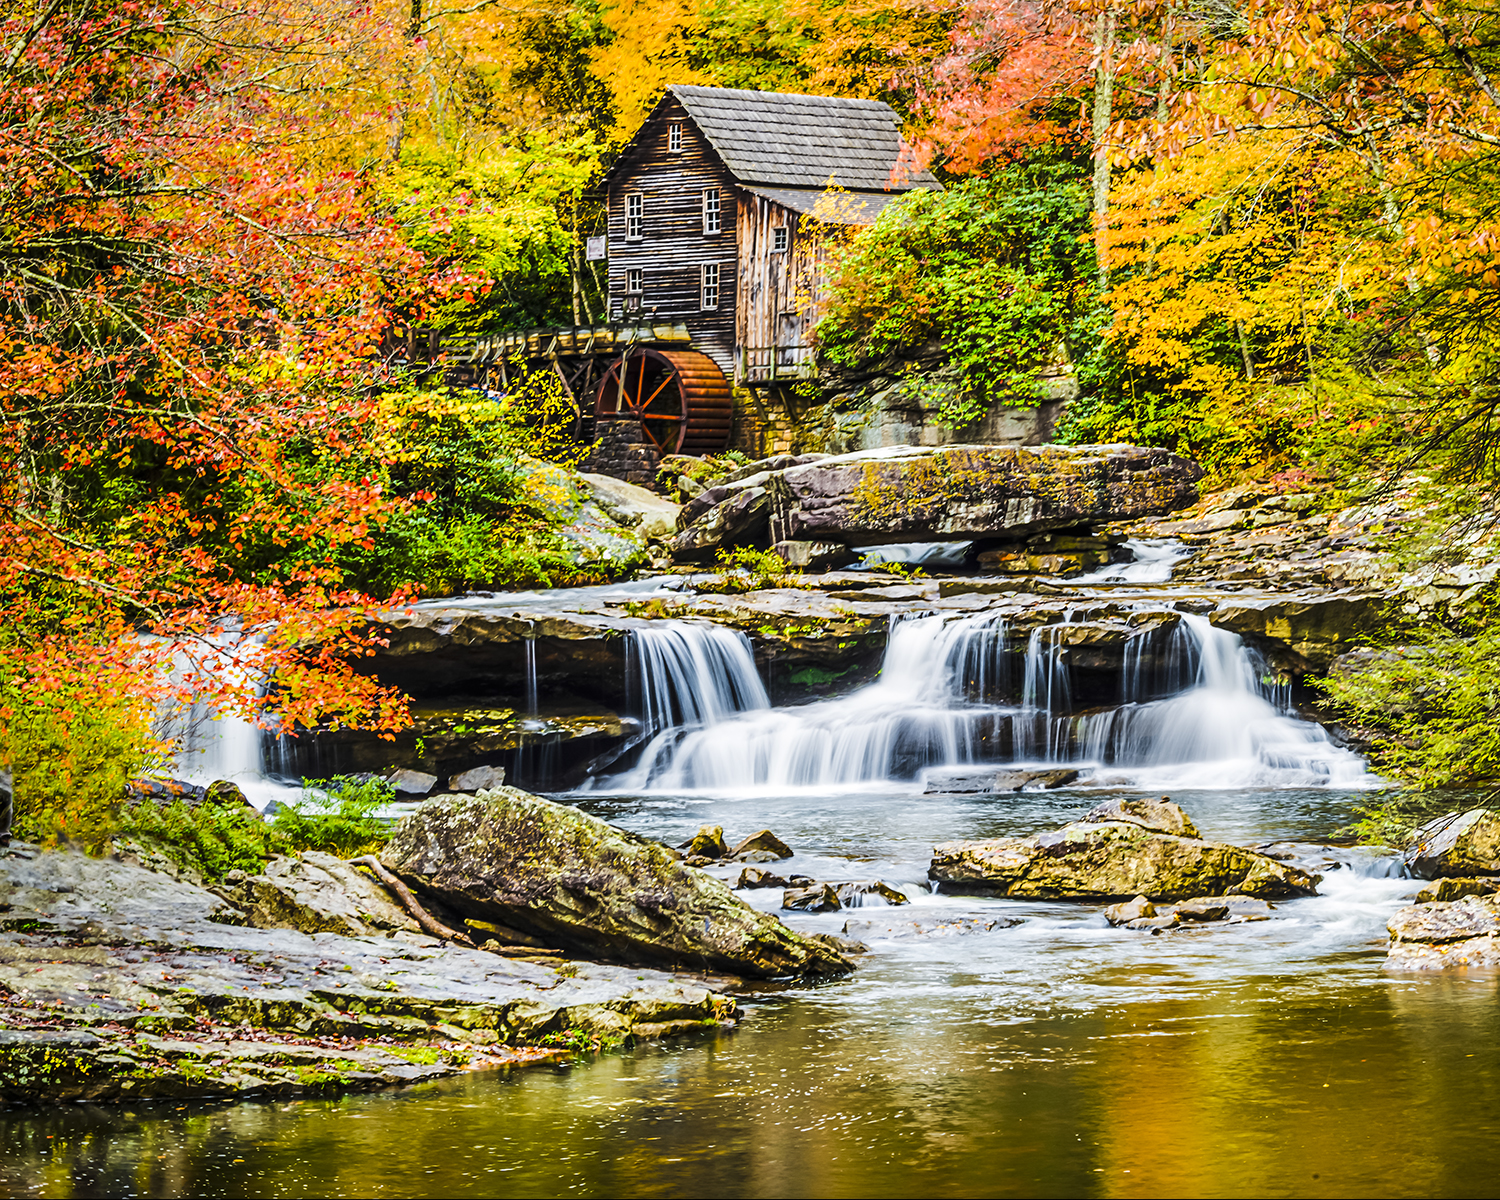 Bill Westerhoff - Glade Creek Grist Mill - Clifftop,West Virginia